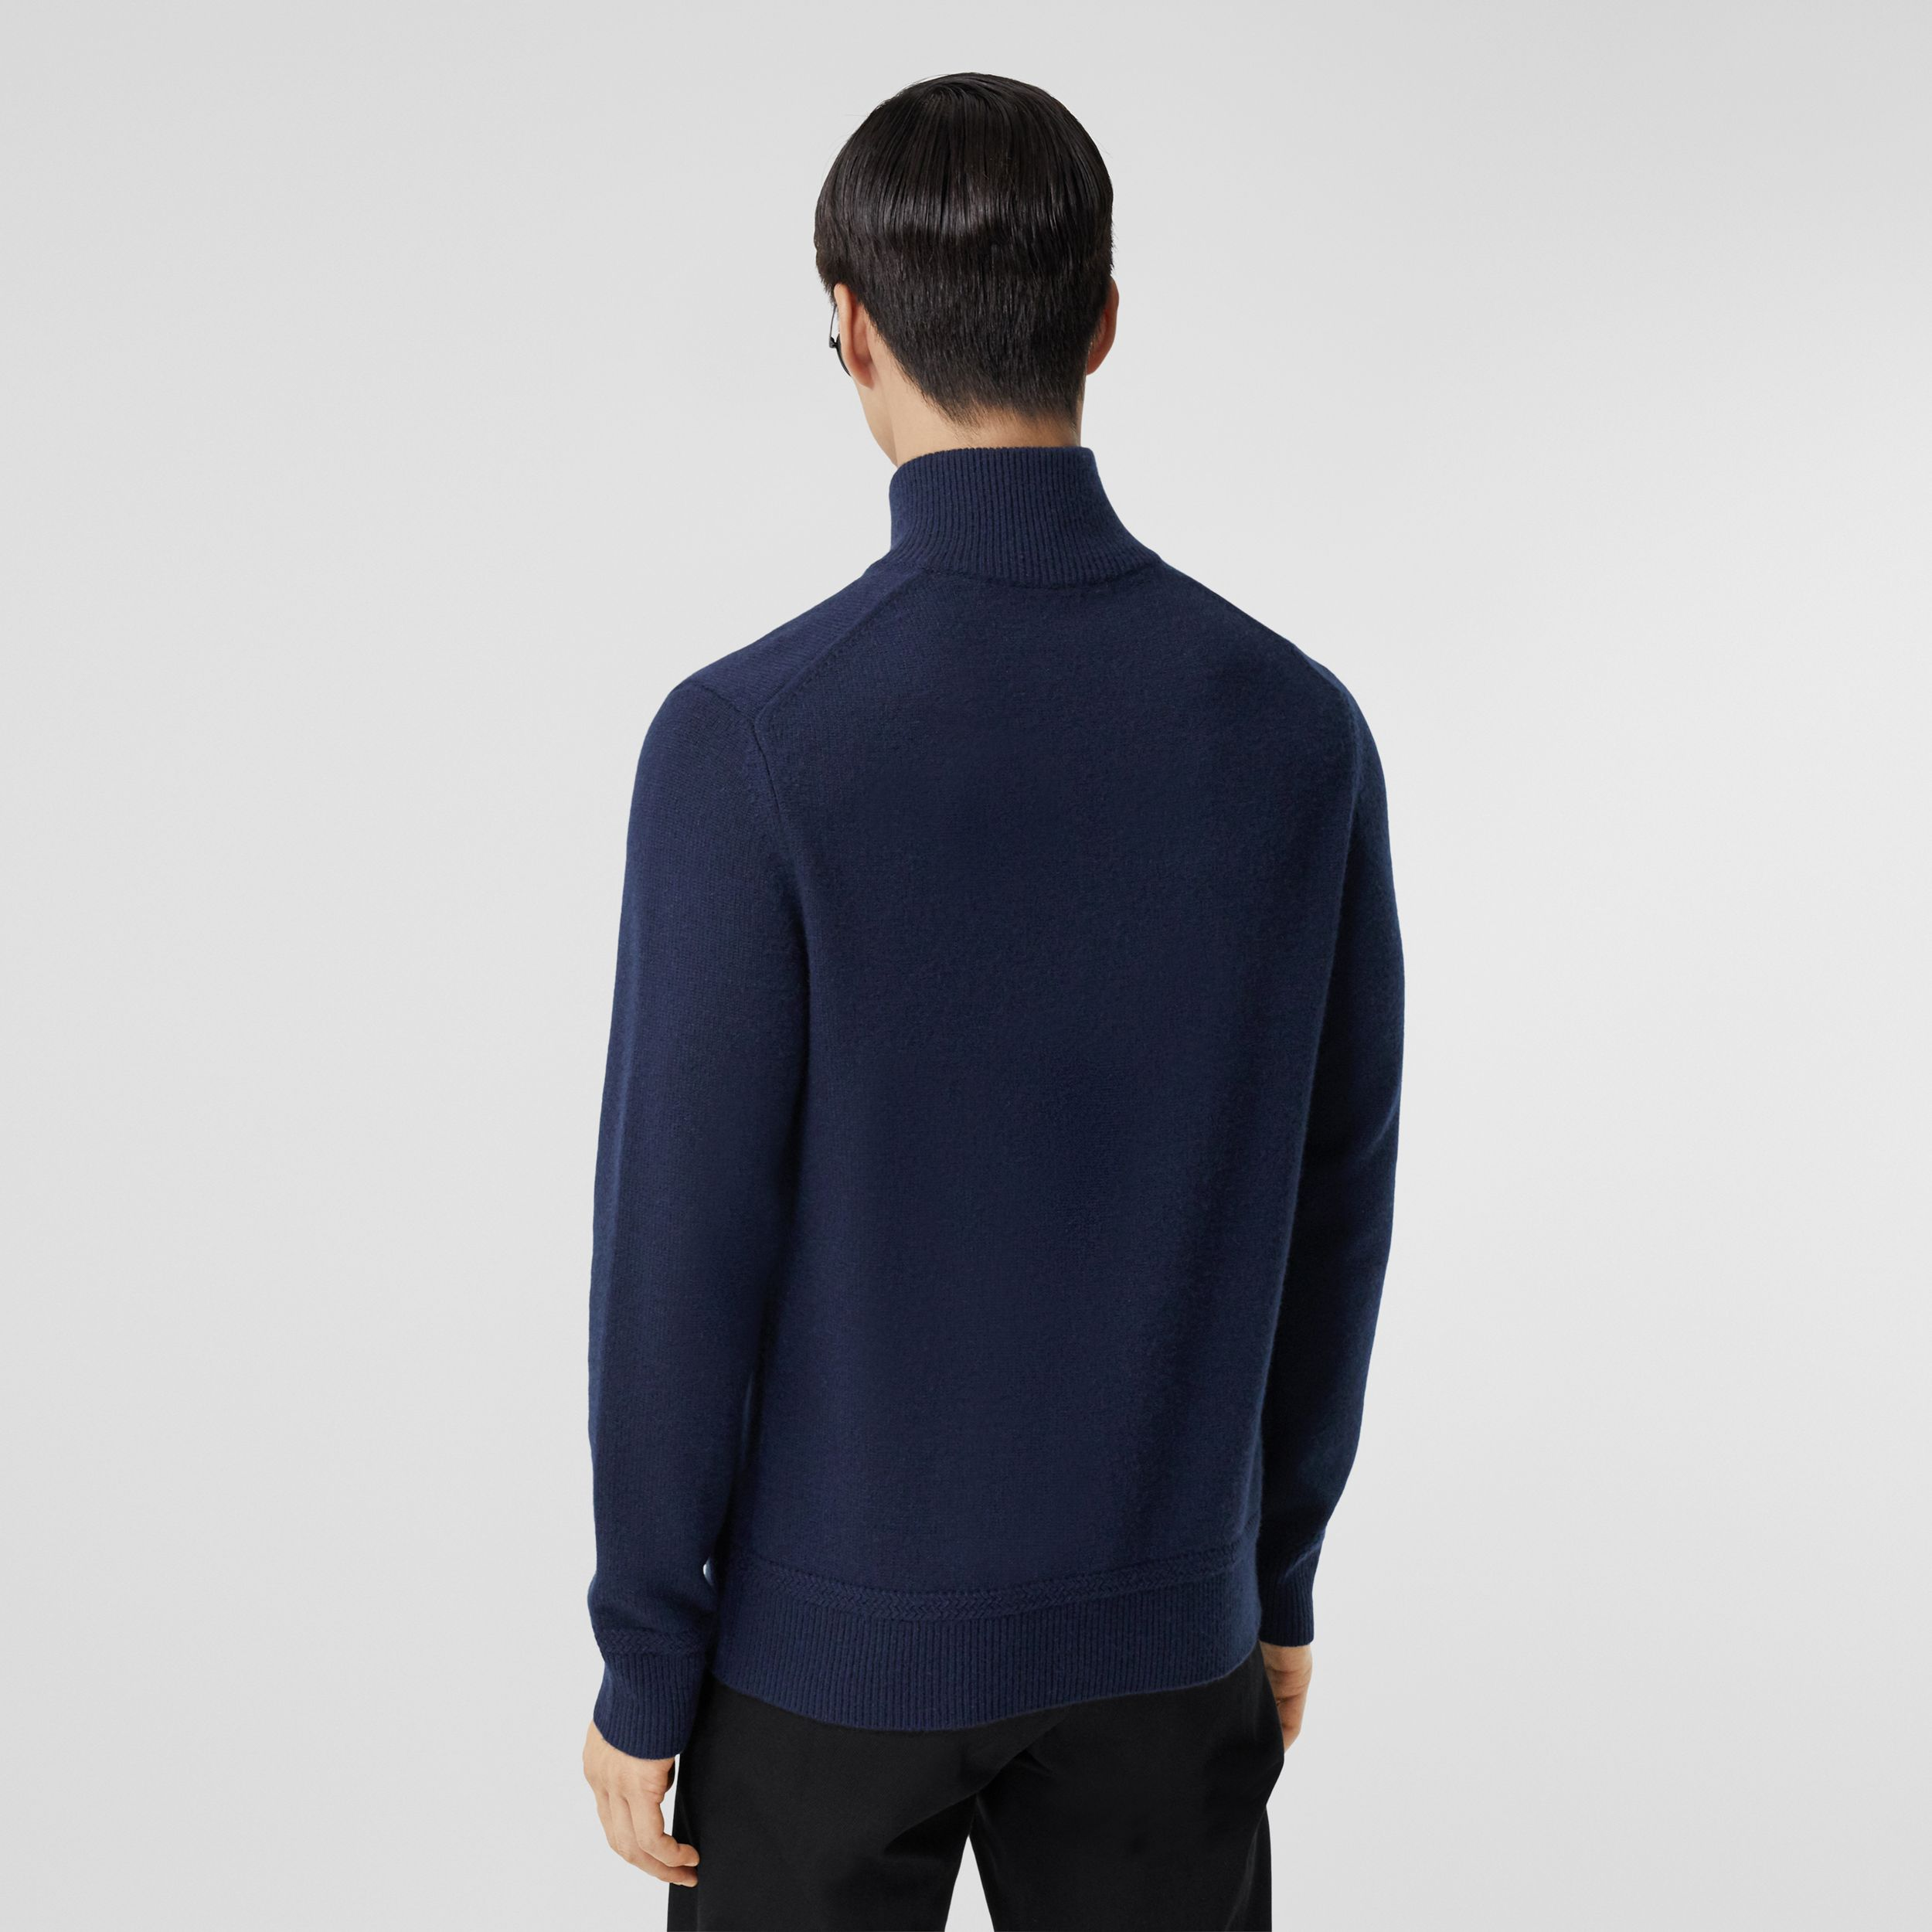 Monogram Motif Cashmere Funnel Neck Sweater in Navy - Men | Burberry United Kingdom - 3